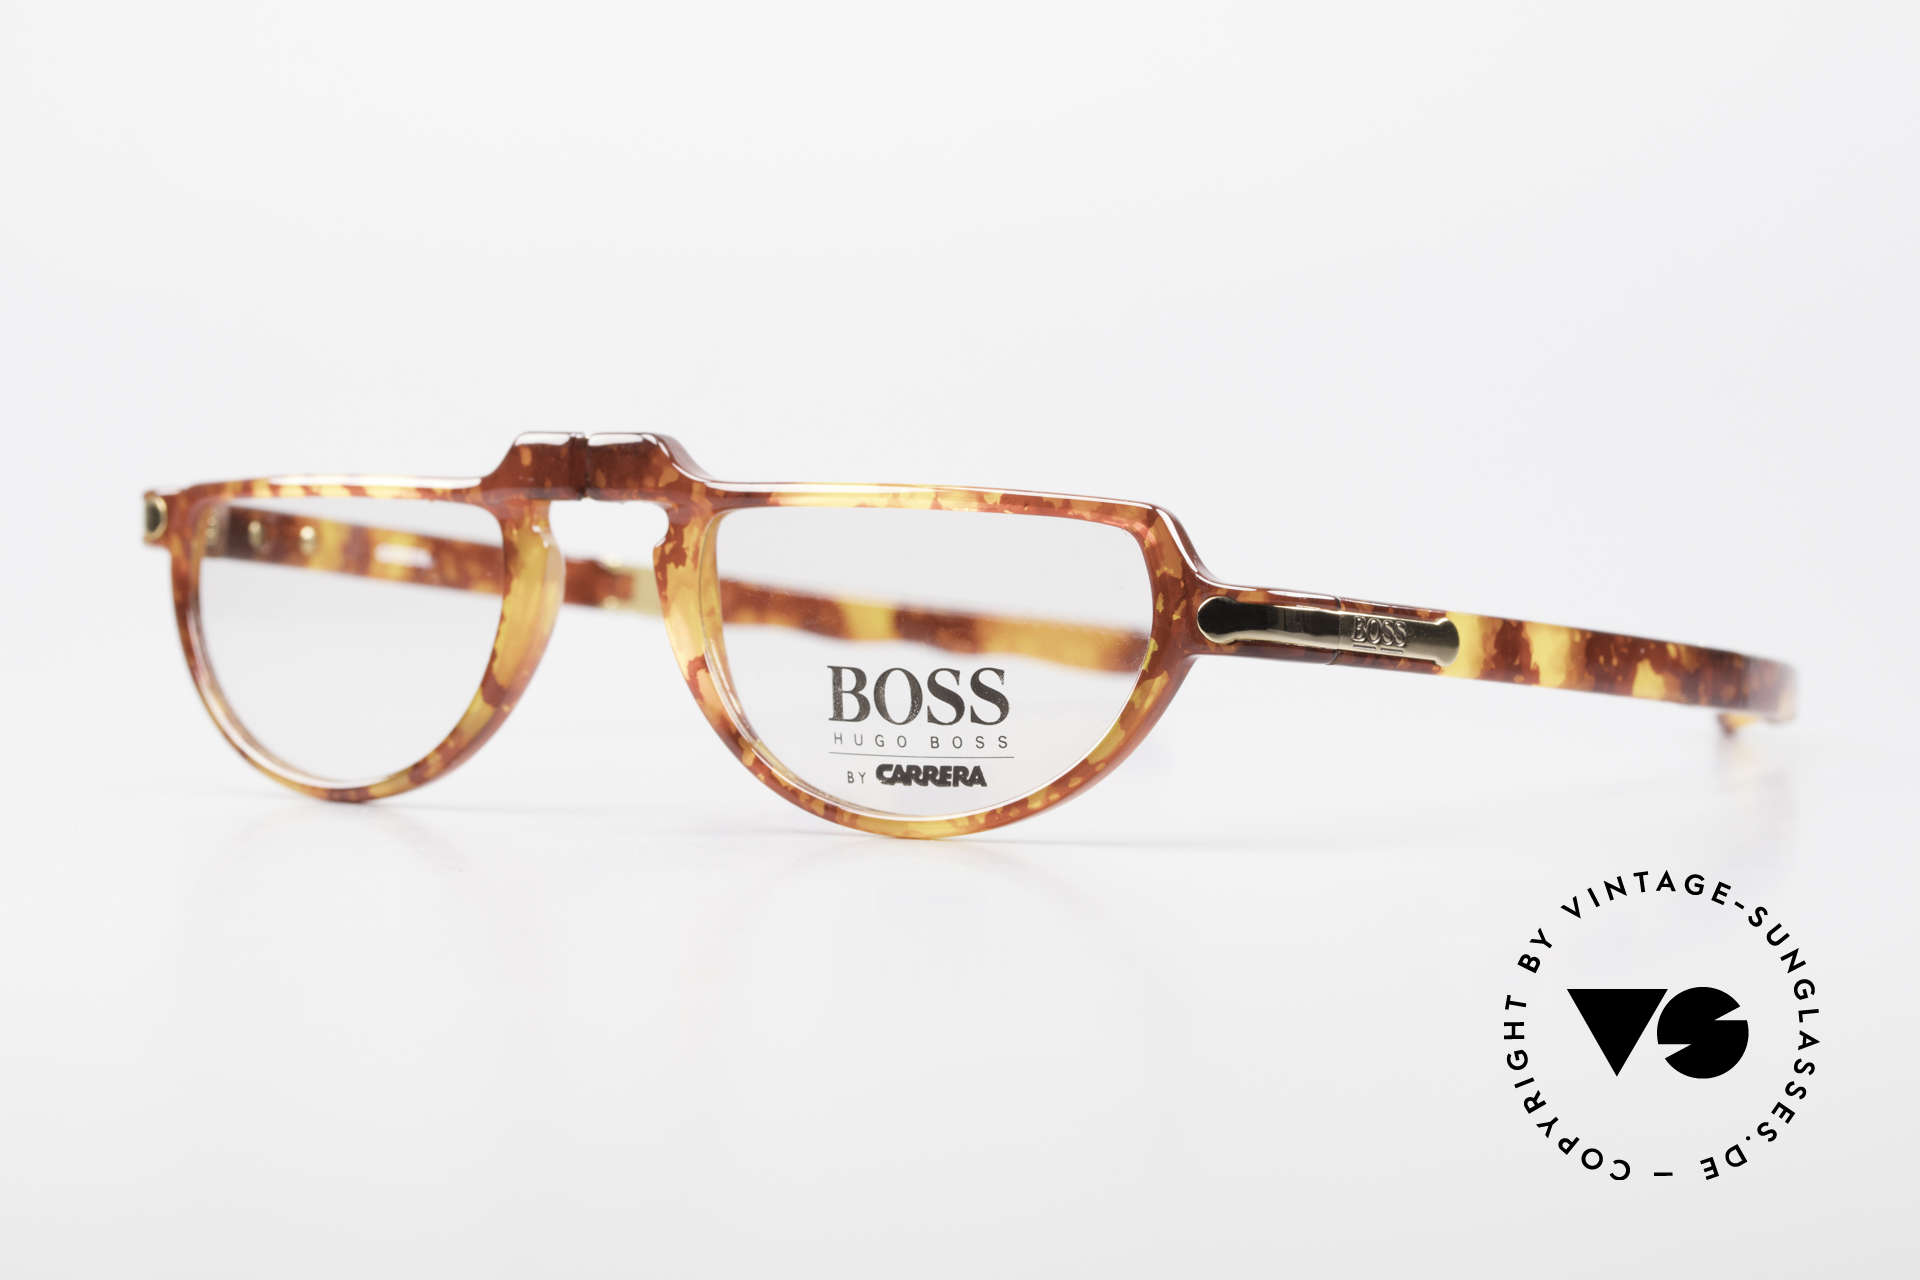 BOSS 5103 90's Folding Reading Glasses, high-end OPTYL material (lightweight and durable), Made for Men and Women